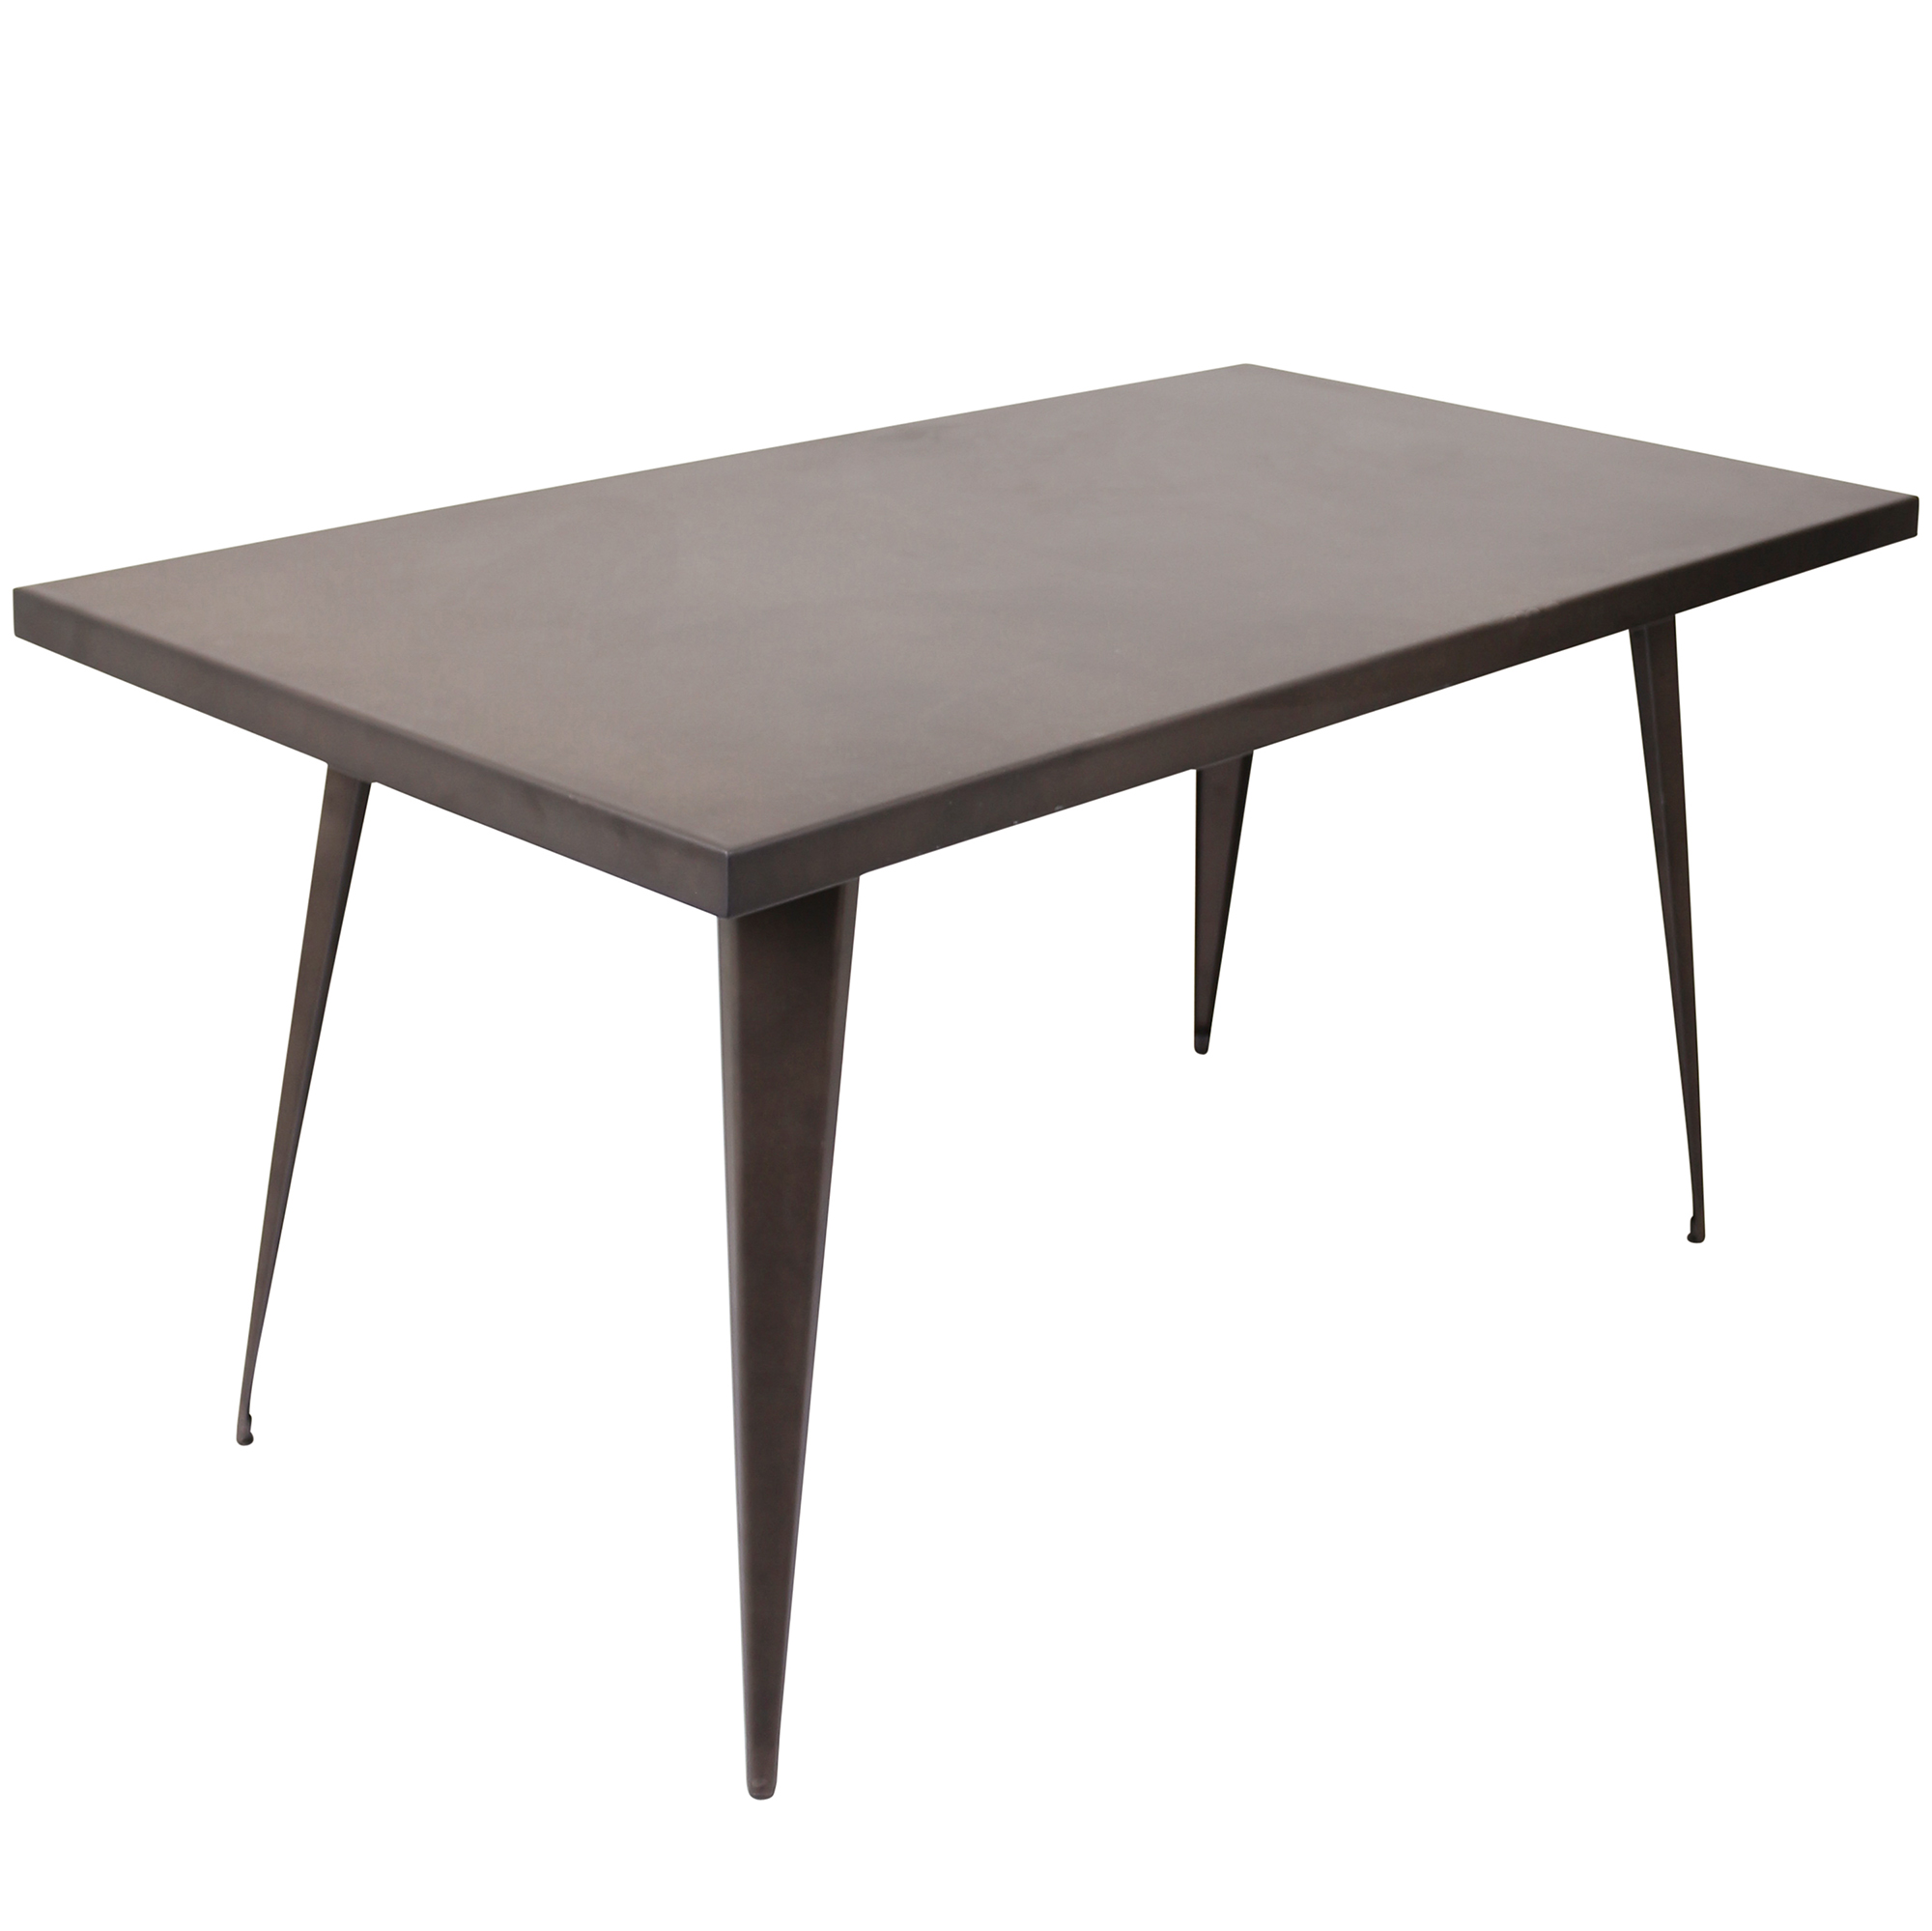 Austin Industrial Dining Table in Antique by Lumisource by LumiSource